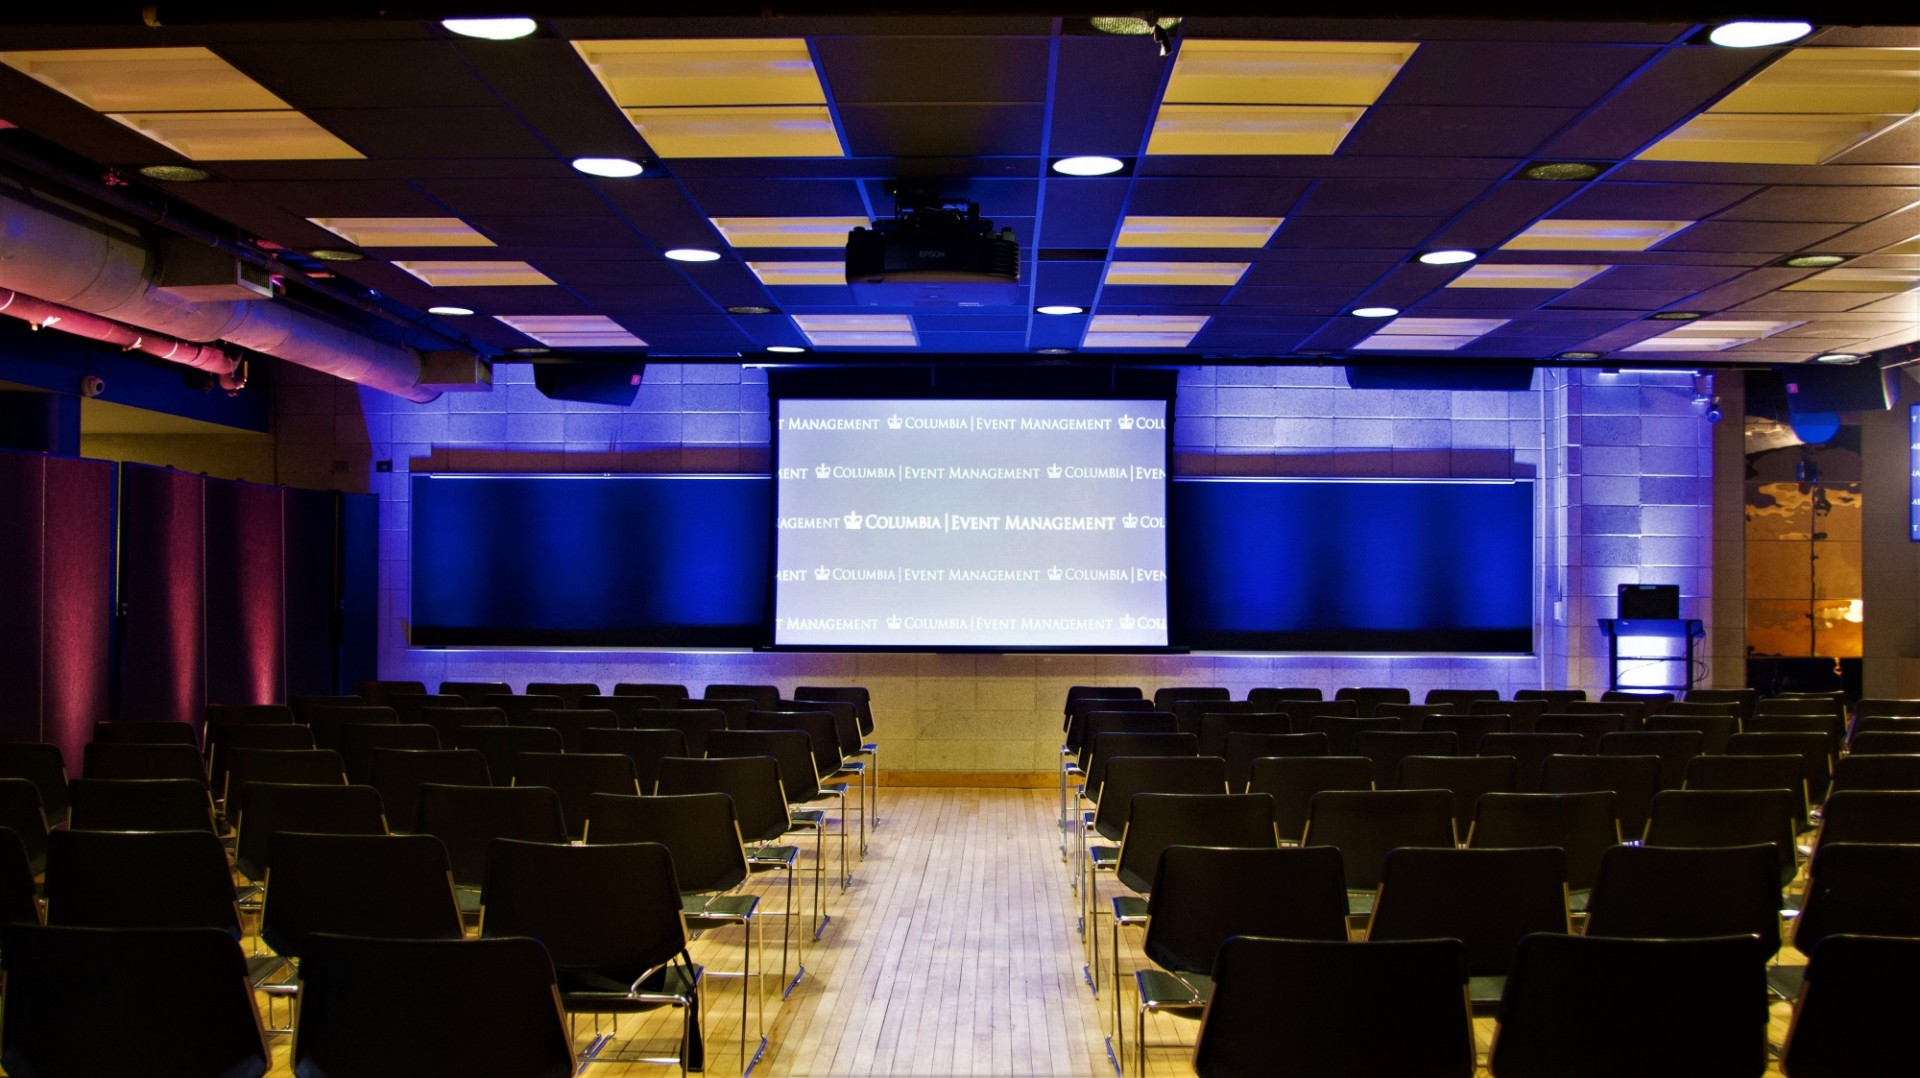 Rows of black chairs face a projector screen mounted on a stone wall.